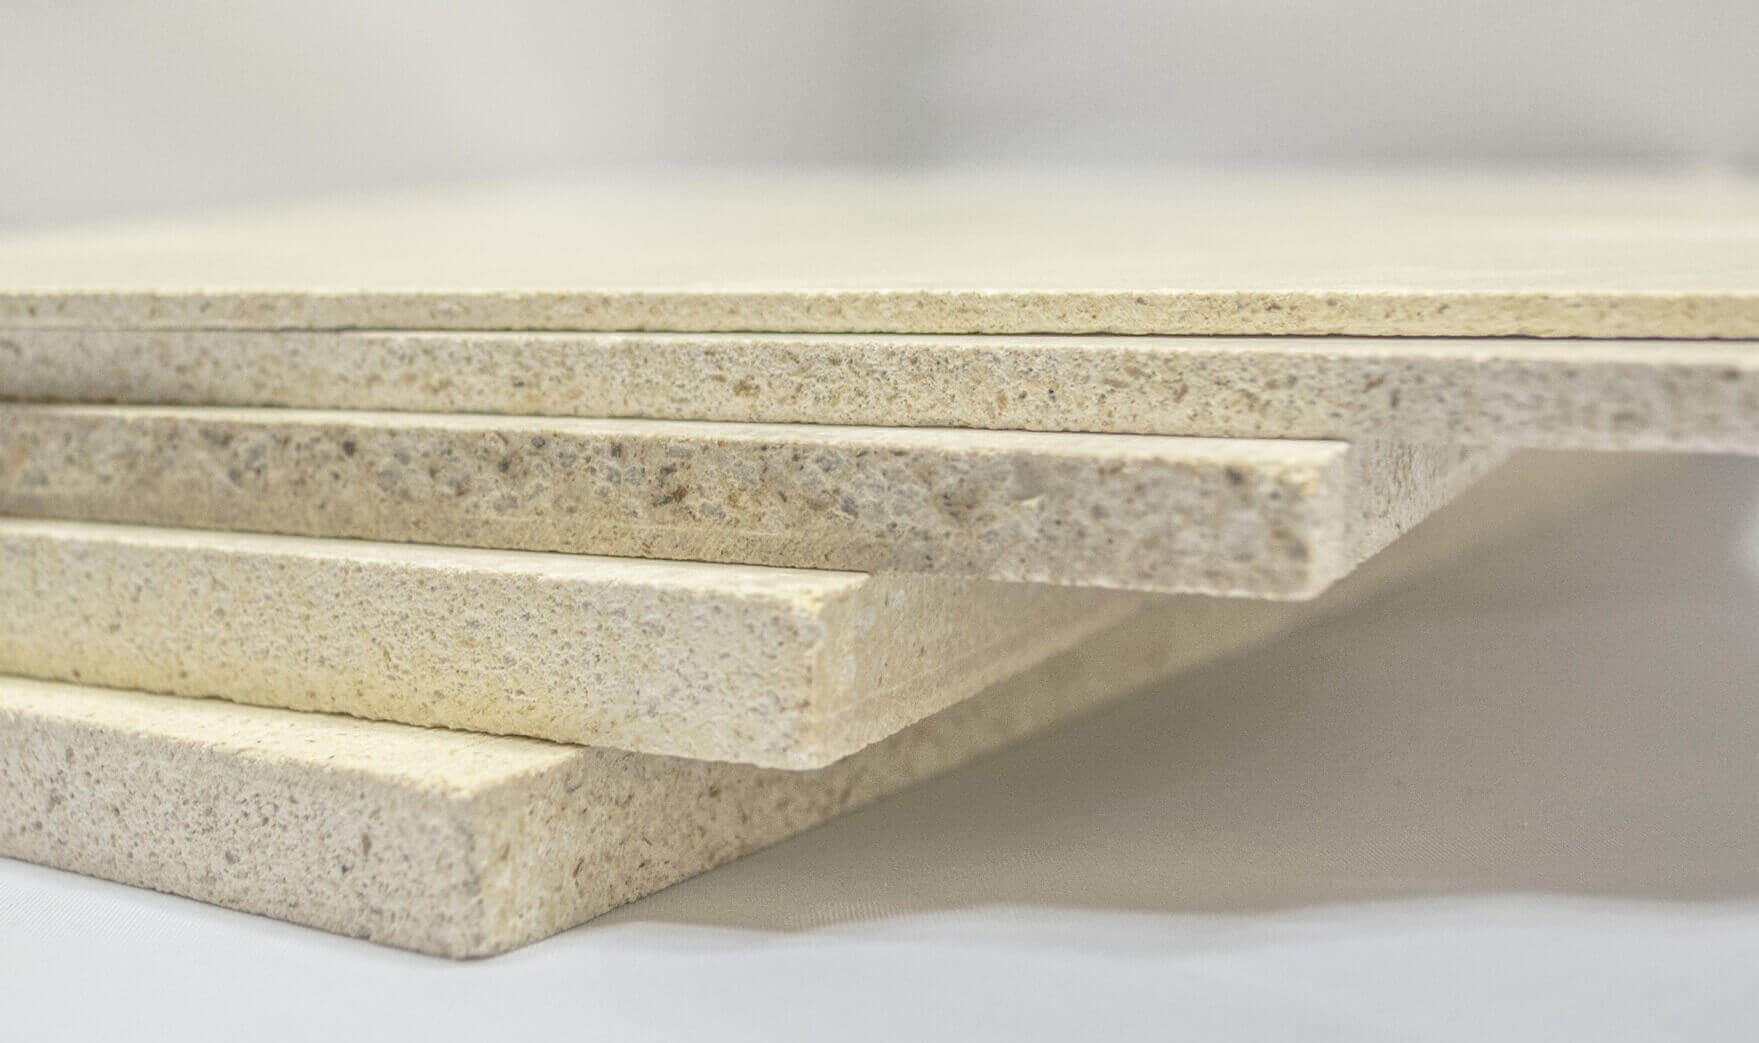 Magnesium Oxide Boards Magboard Mgo Panels Official Website